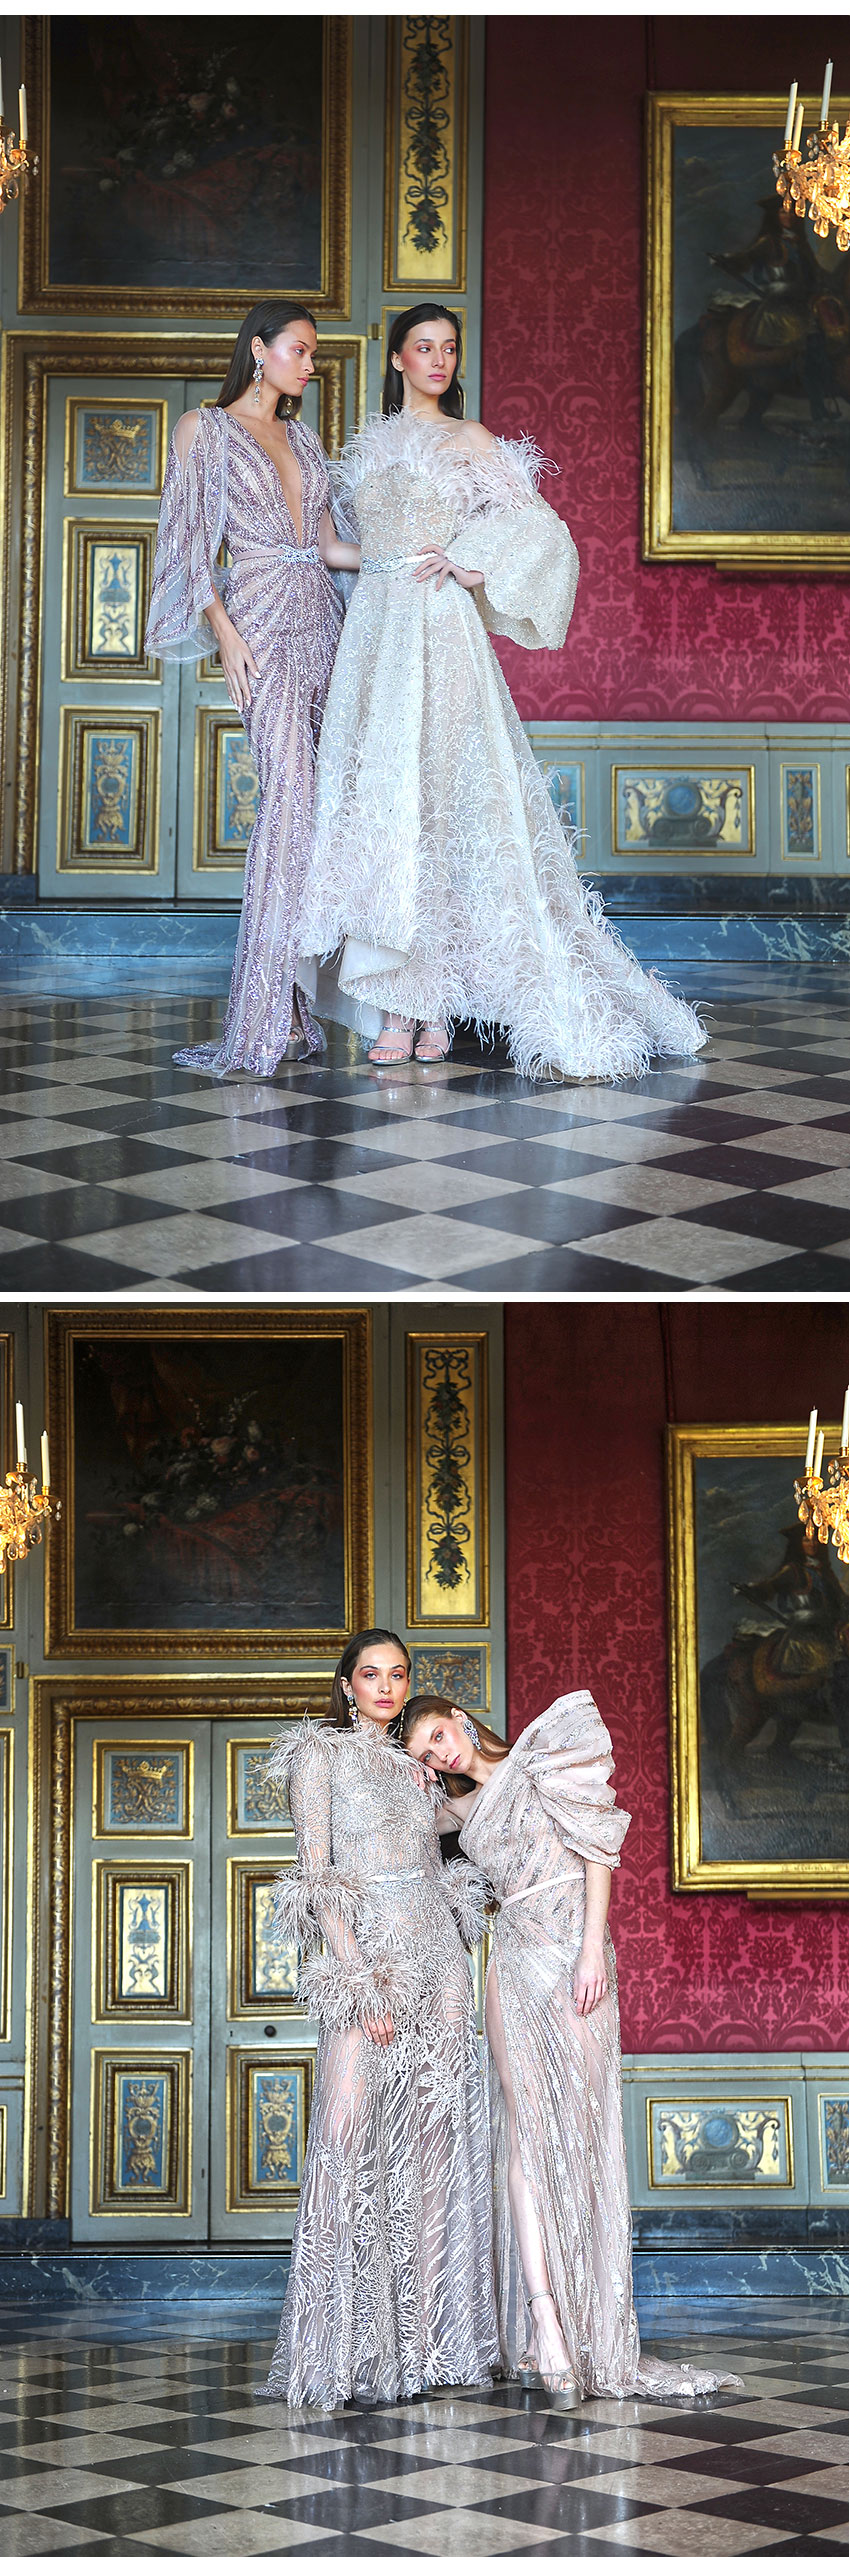 Ziad Nakad Haute Couture Spring Summer 2021 collection photographed at the Château de Vaux-Le-Vicomte featured in Perfect Wedding Magazine